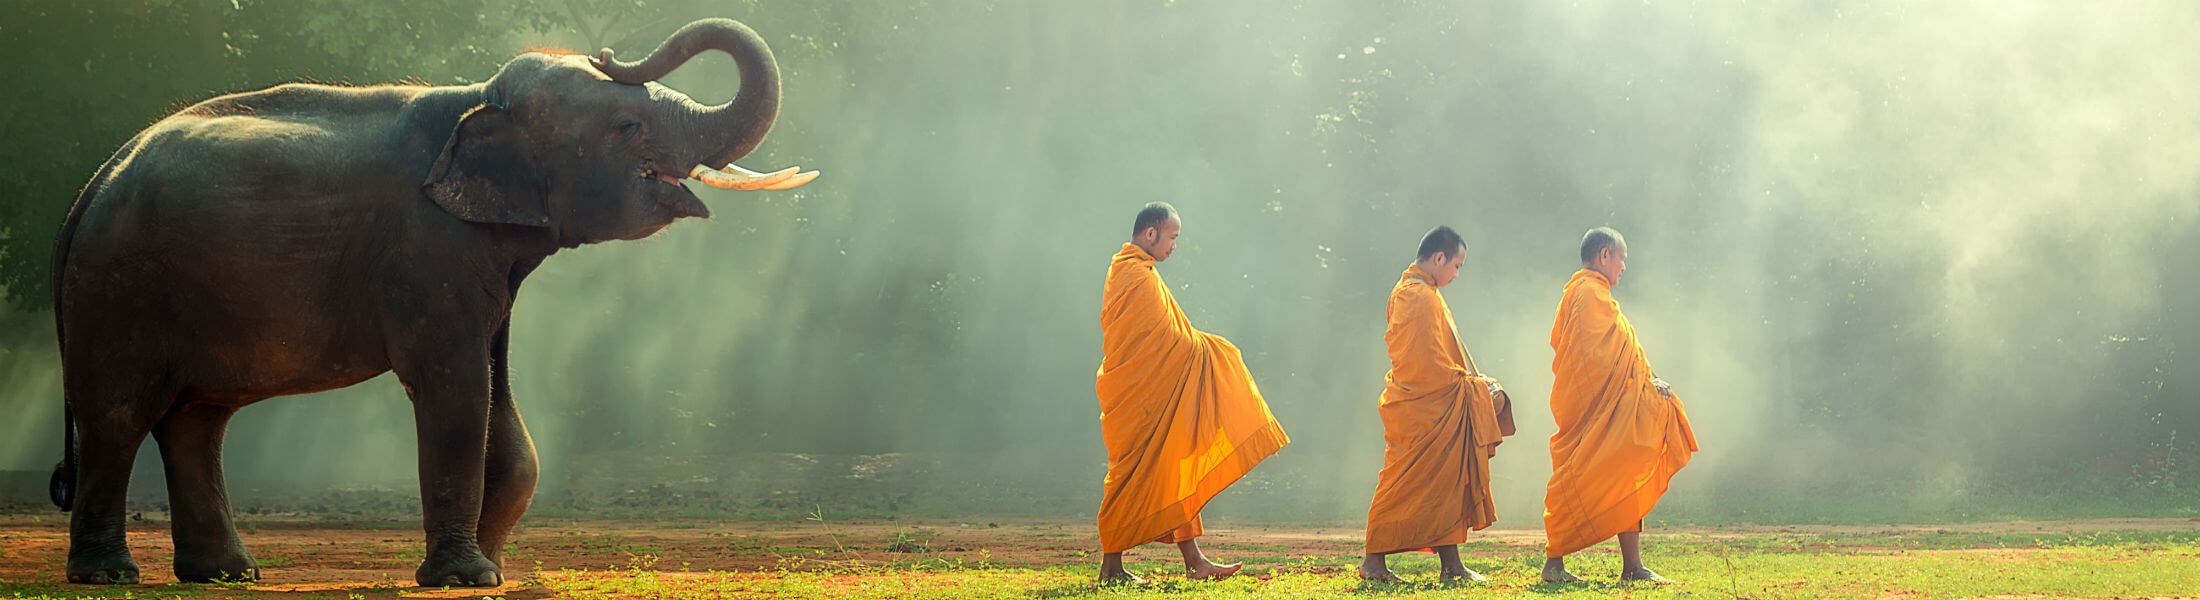 Thailand elephant with monks